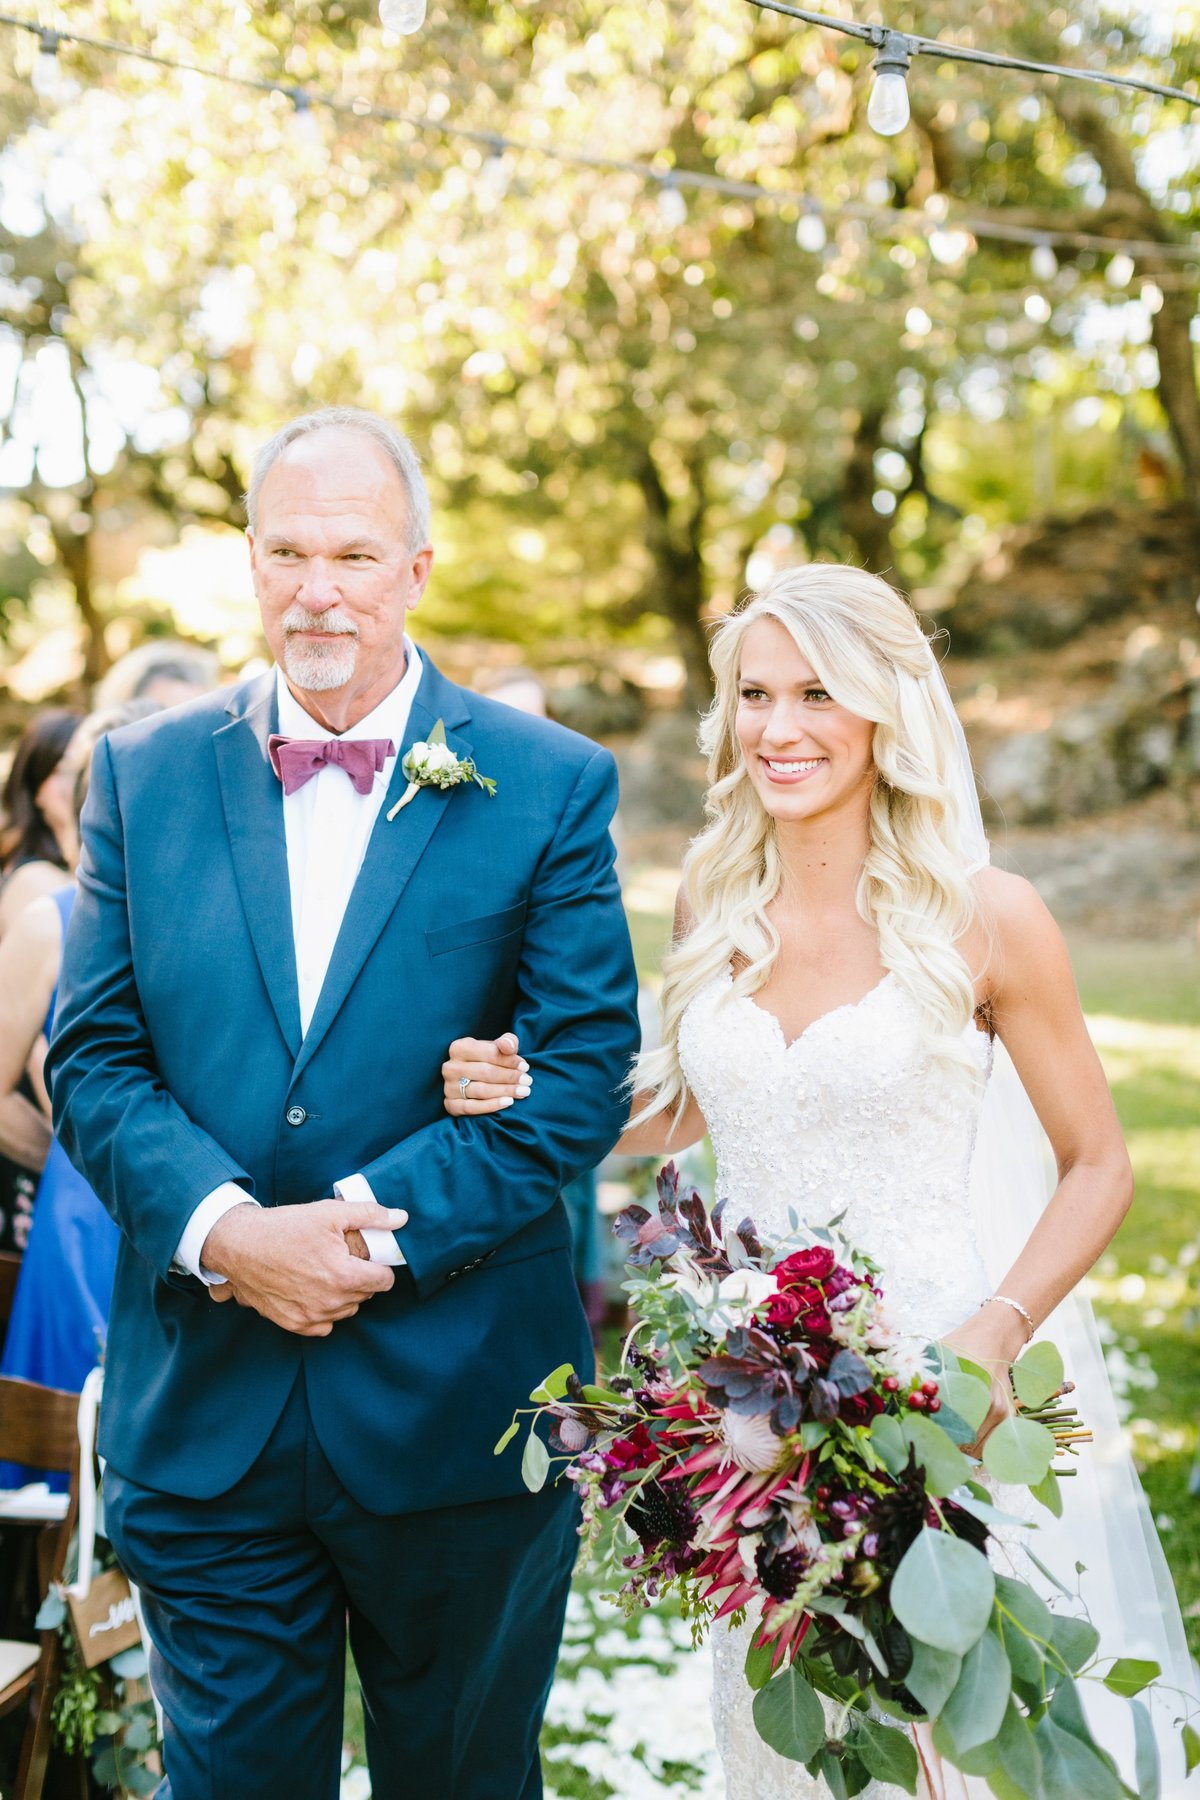 Best California Wedding Photographer-Jodee Debes Photography-67